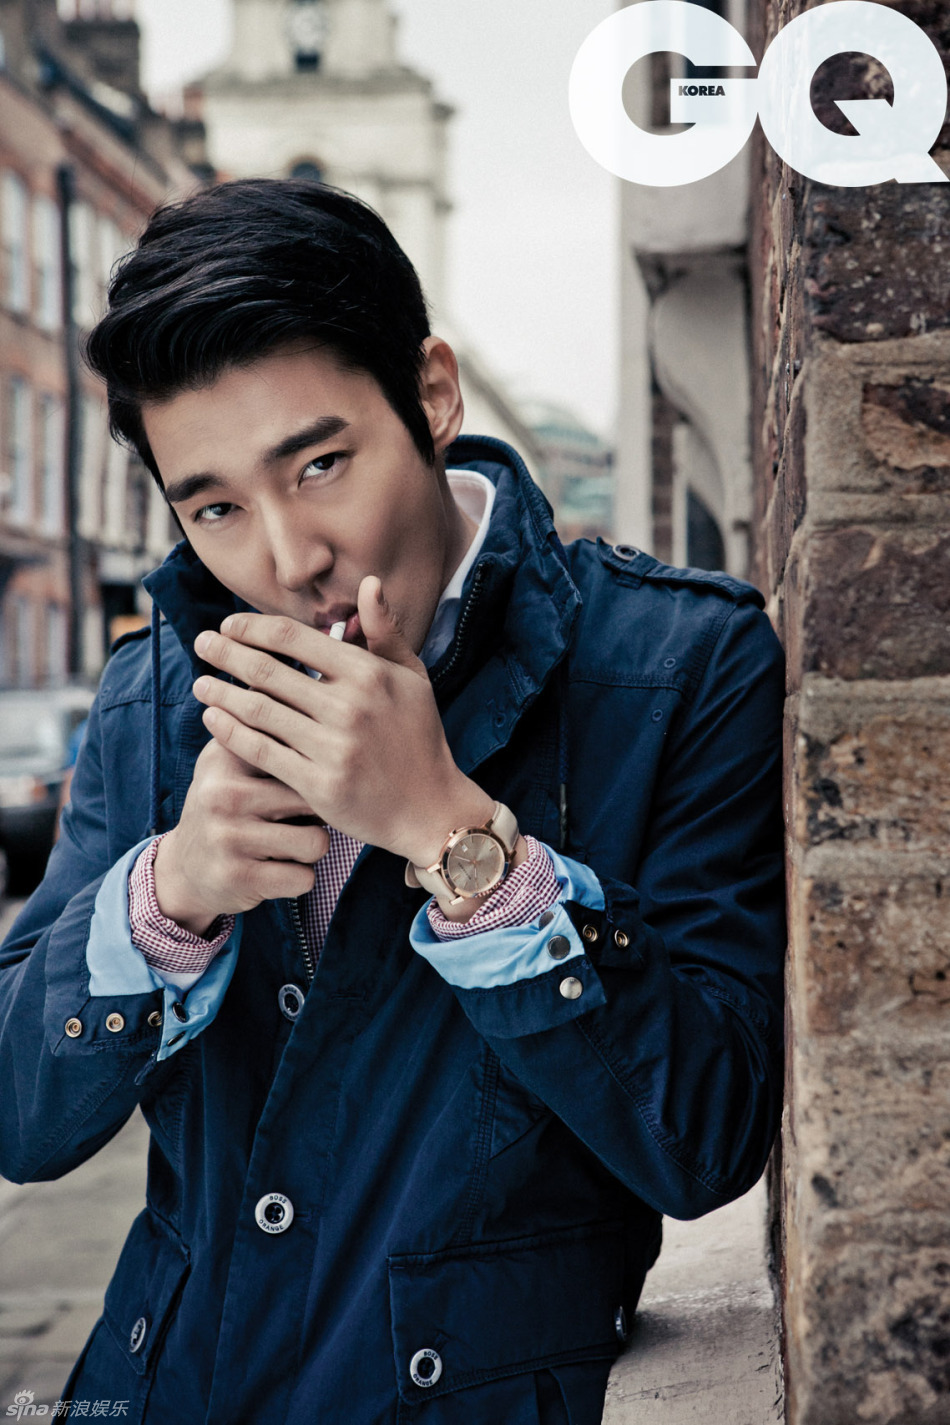 nata-lina: Choi Siwon in 'GQ' magazine for March 2012